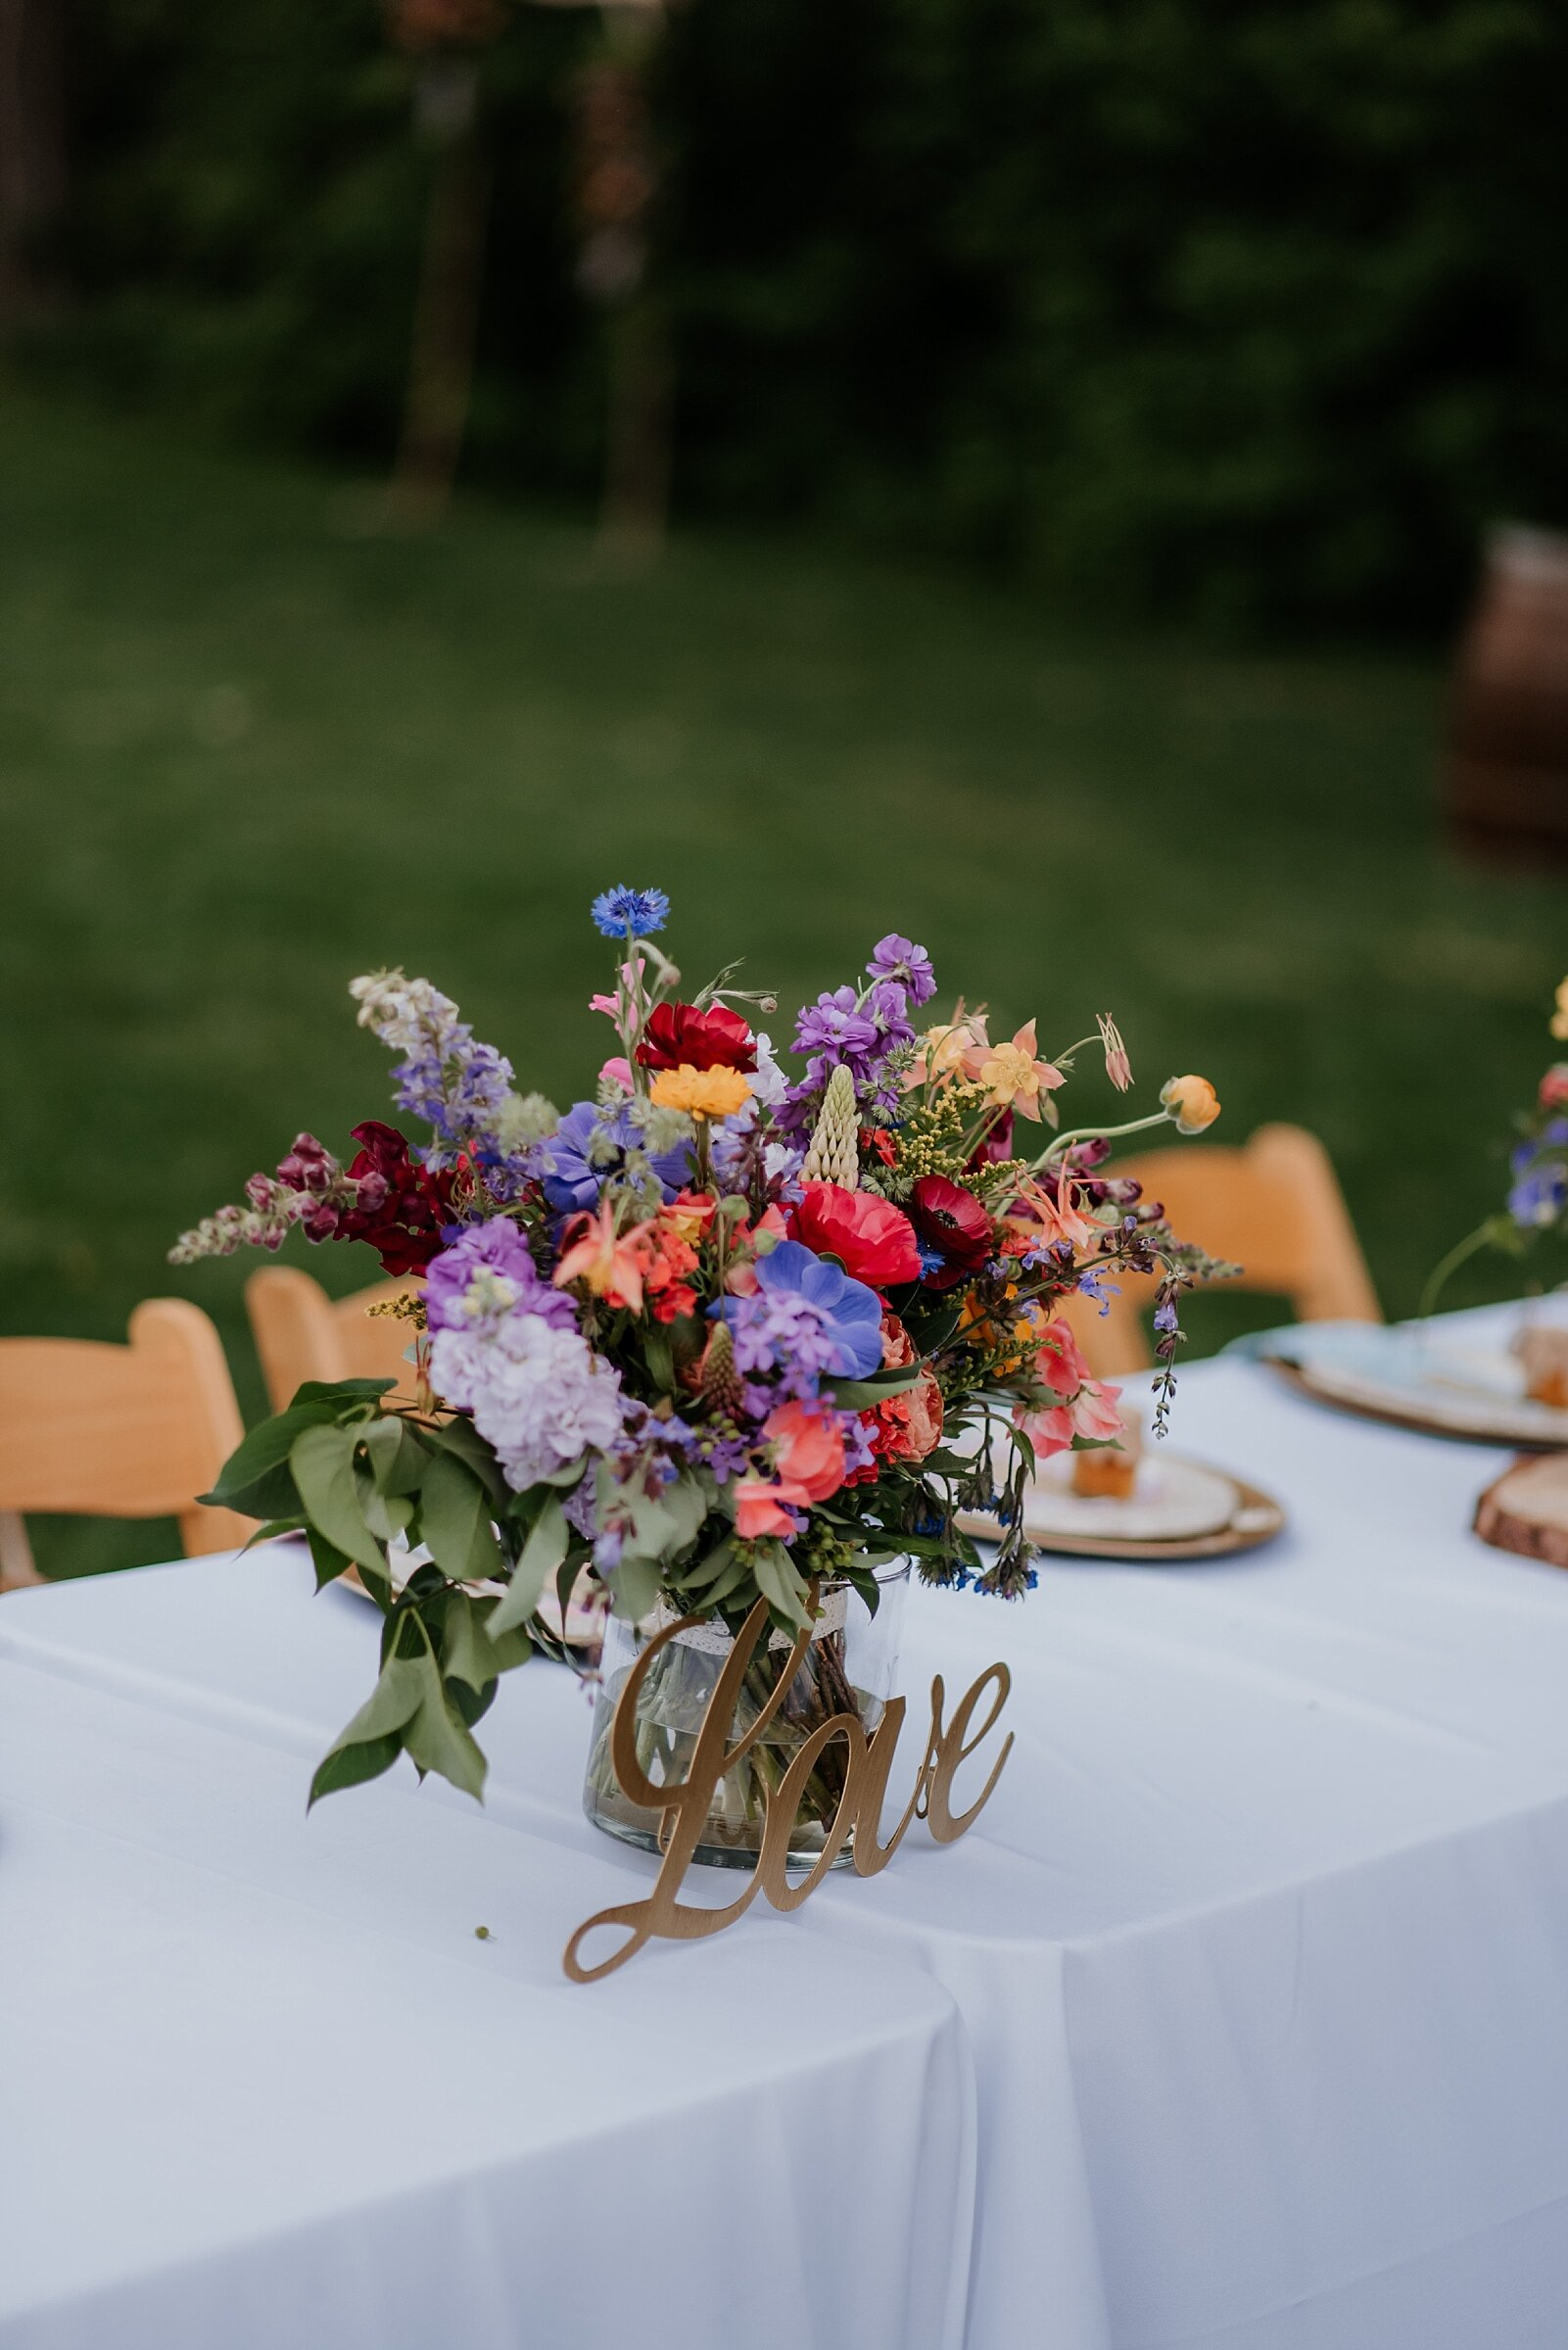 lyons farmette wedding, colorado wedding planning, denver wedding photographer, colorado wedding photographer, denver wedding videographer, colorado wedding videographer, colorado elopement photographer, Small Colorado Wedding Photographer, wildflower wedding,